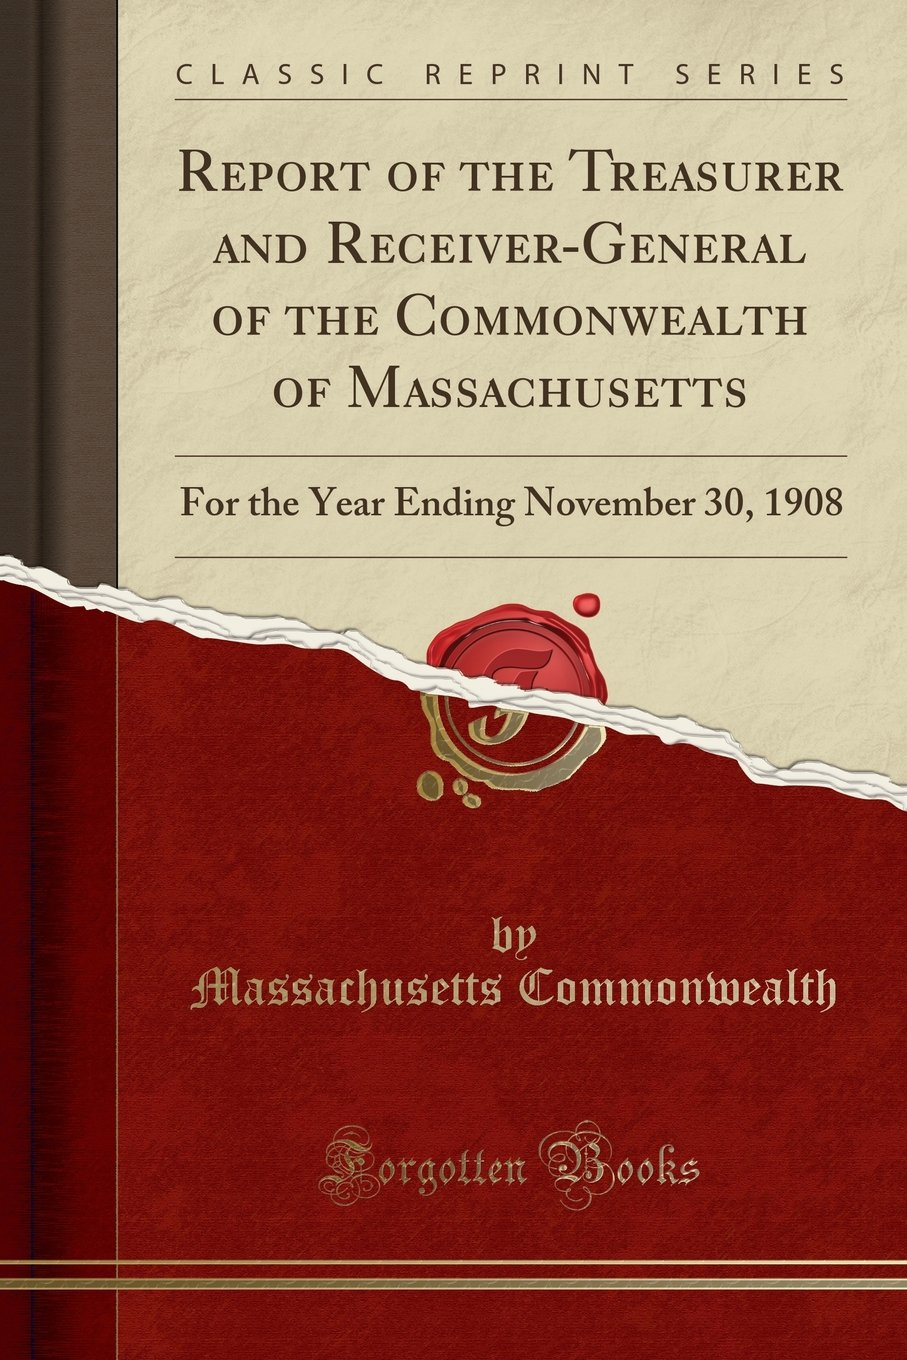 Report of the Treasurer and Receiver-General of the Commonwealth of Massachusetts: For the Year Ending November 30, 1908 (Classic Reprint) ebook